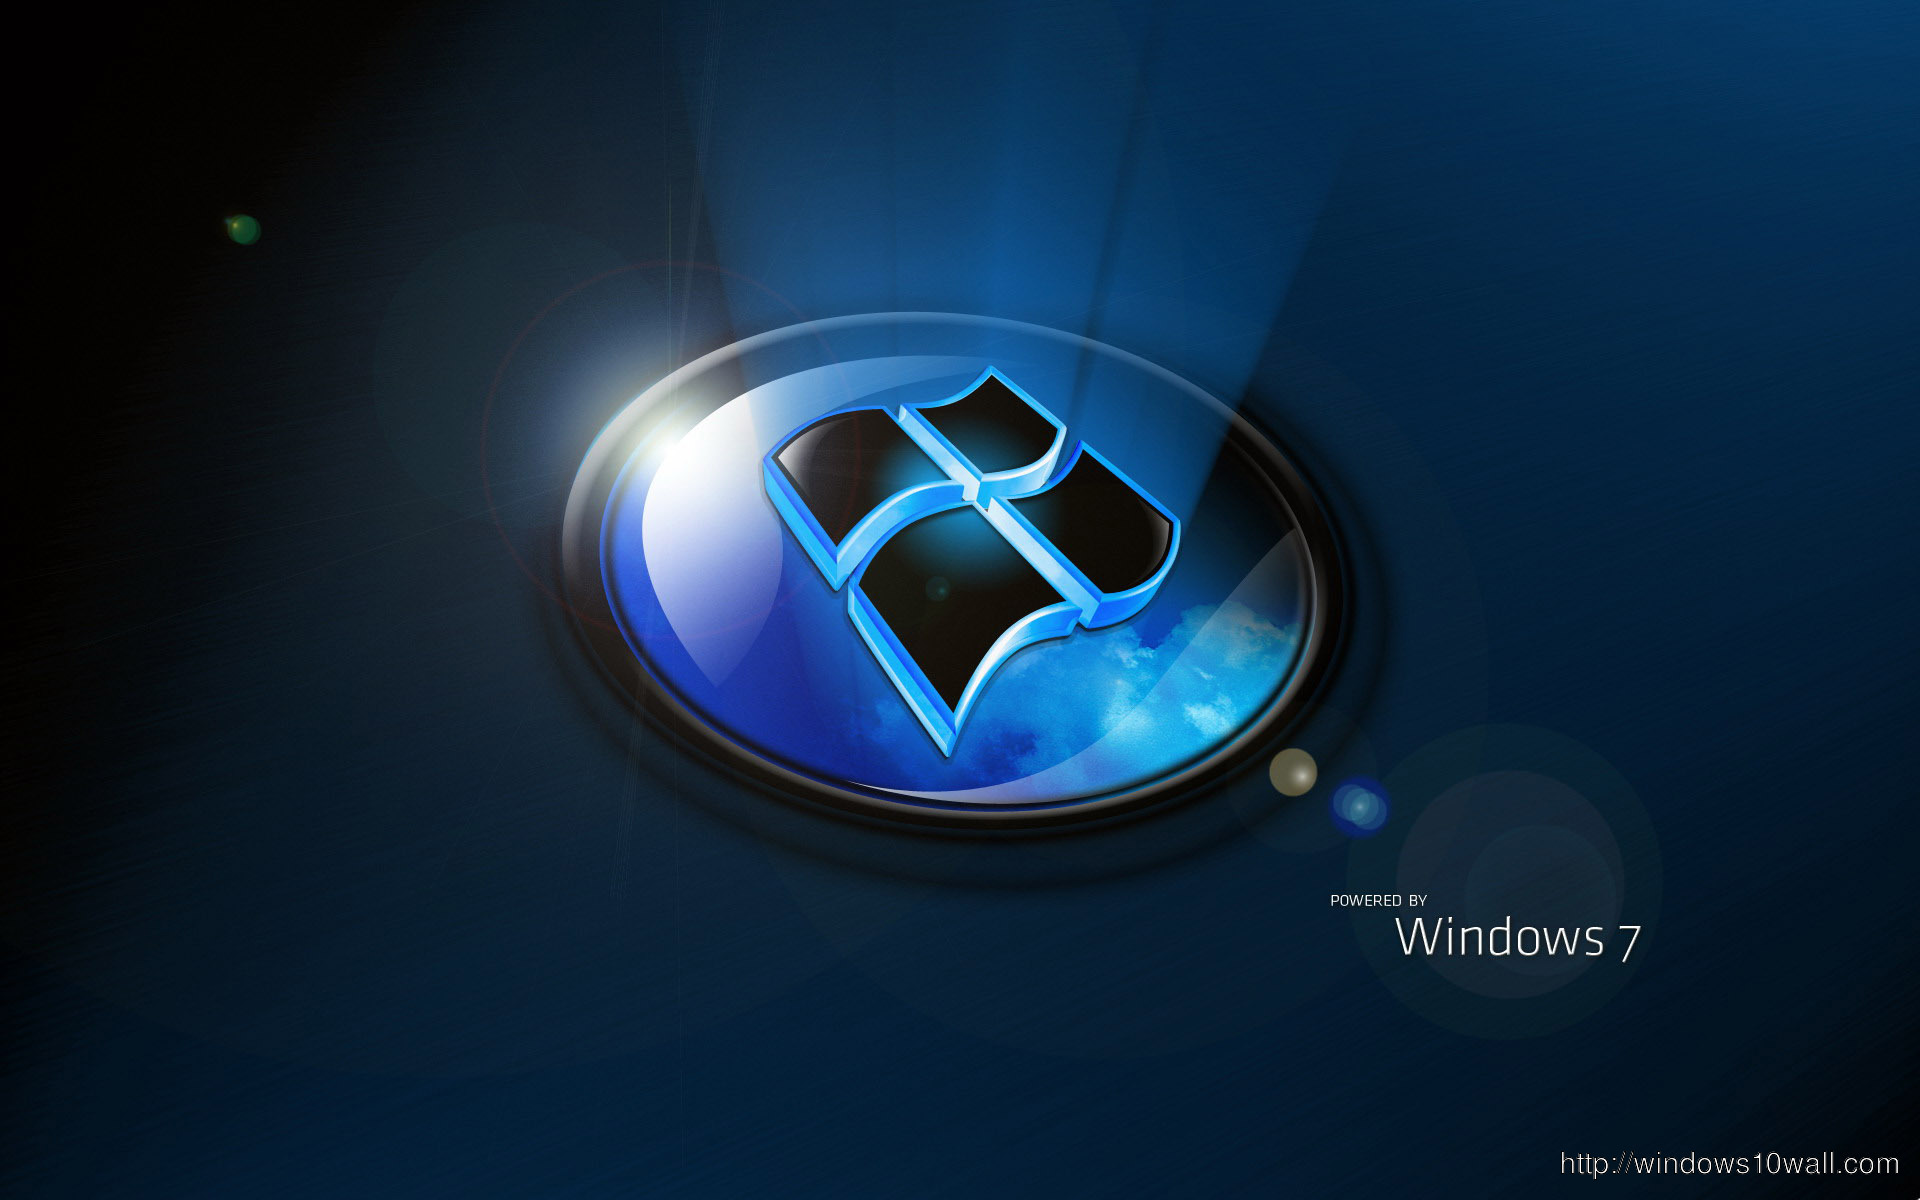 Windows Computer Wallpaper Free Windows 10 Wallpapers